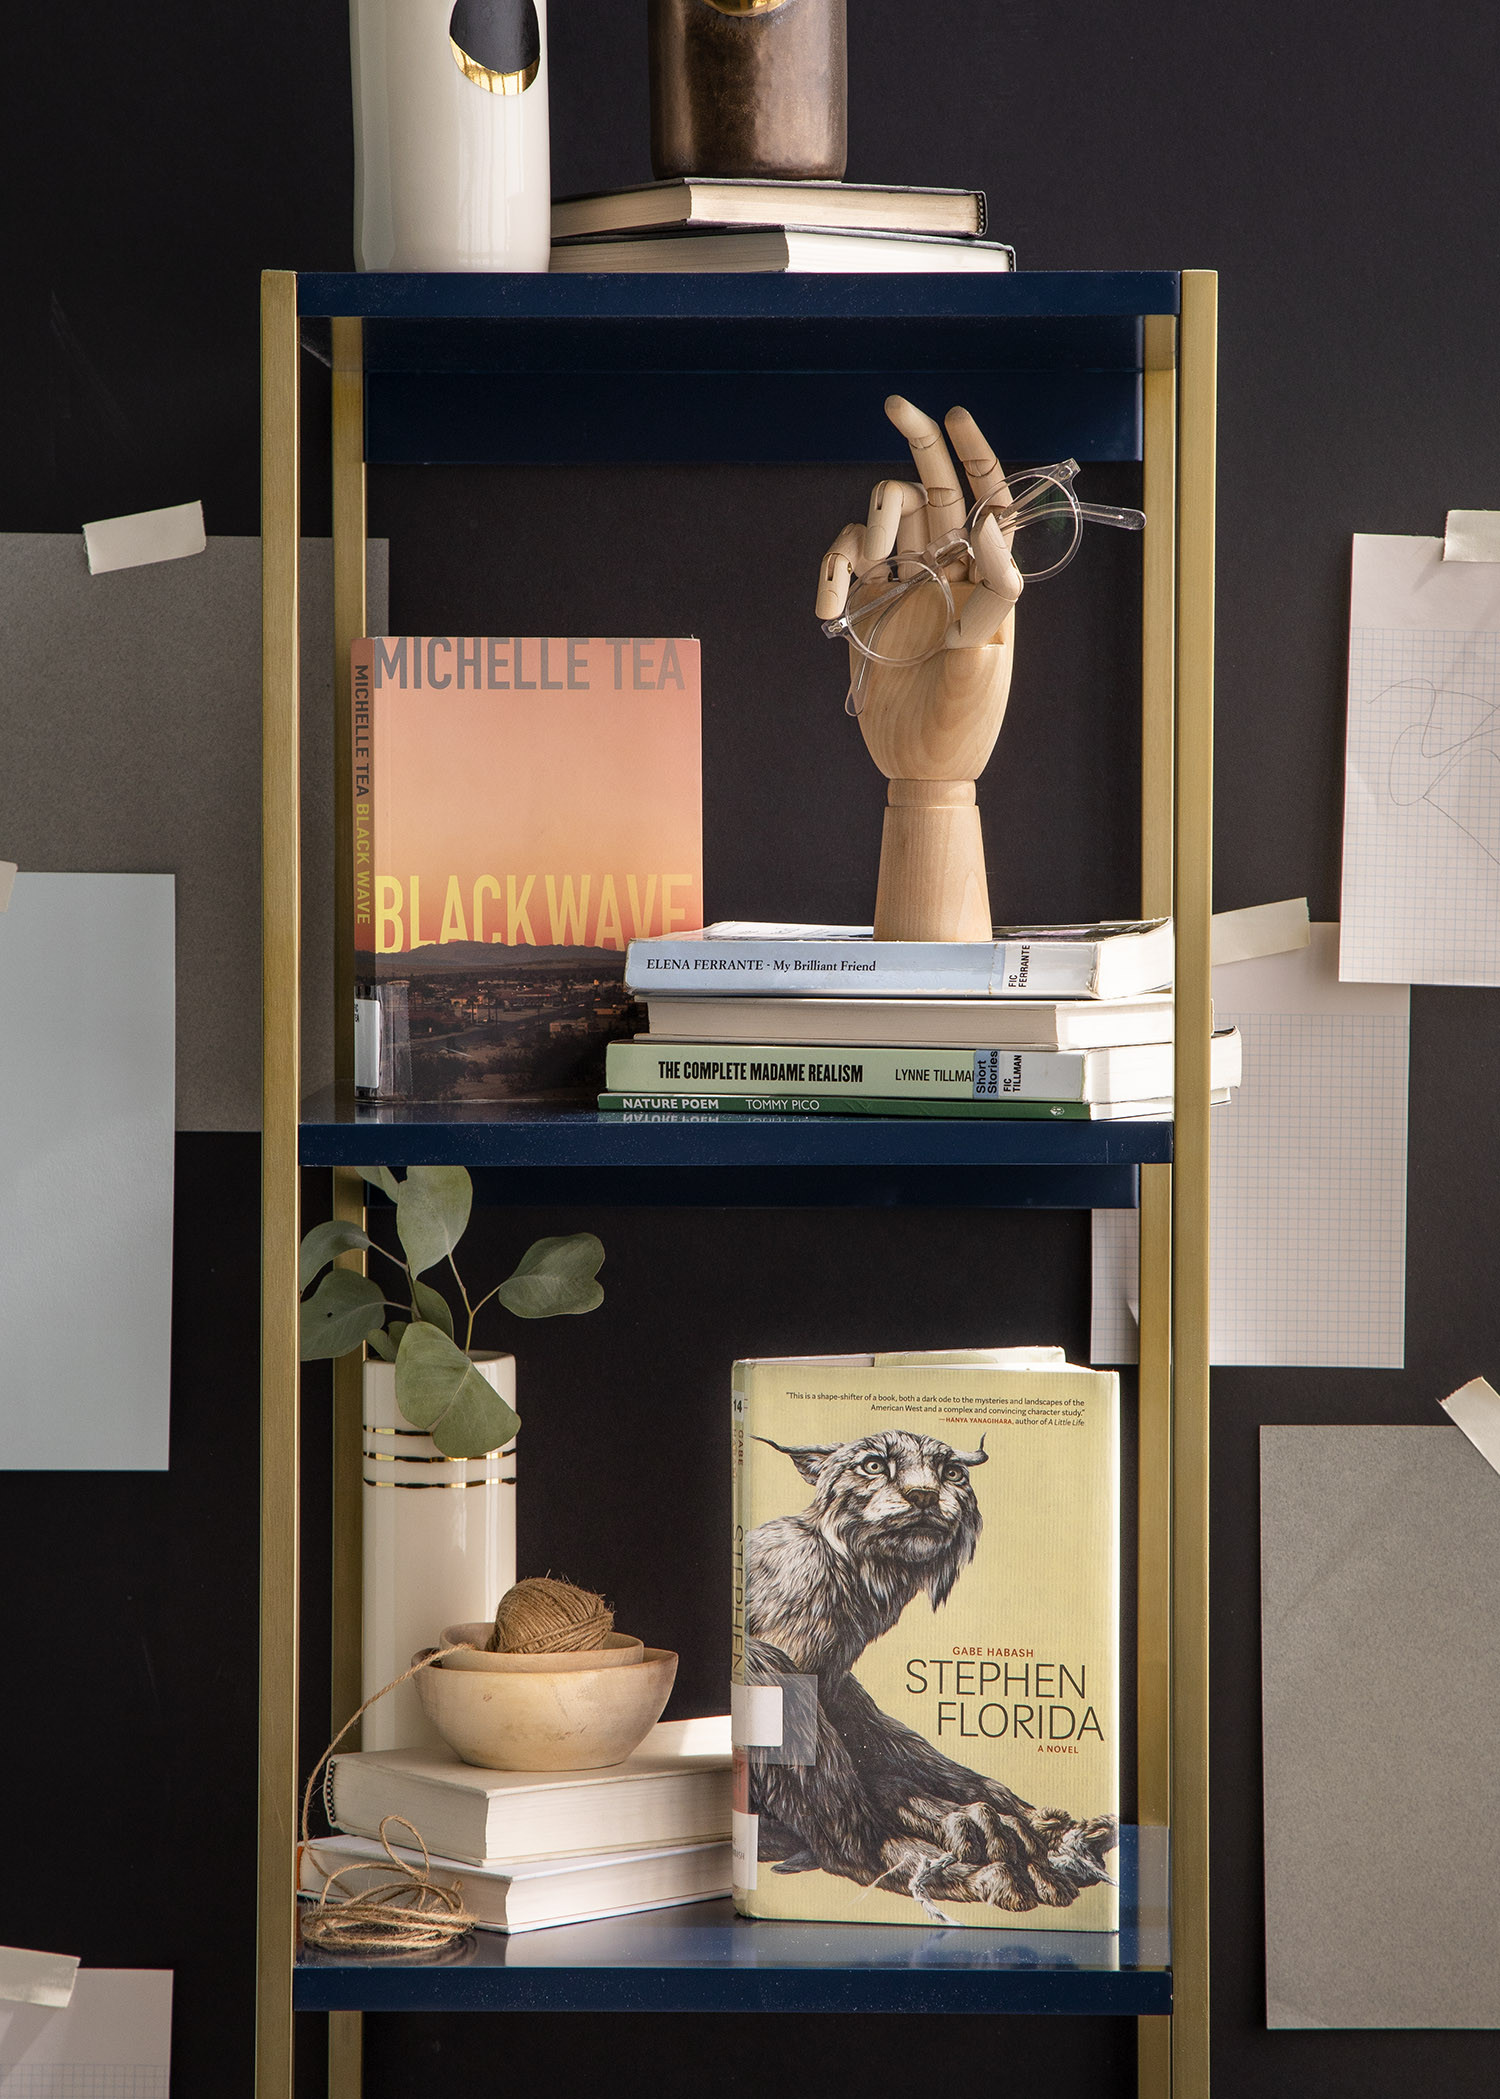 west elm honeycomb vase of on the shelf 5 books to pack for labor day weekend front main intended for west elm 5 books to read this month from the brooklyn public library